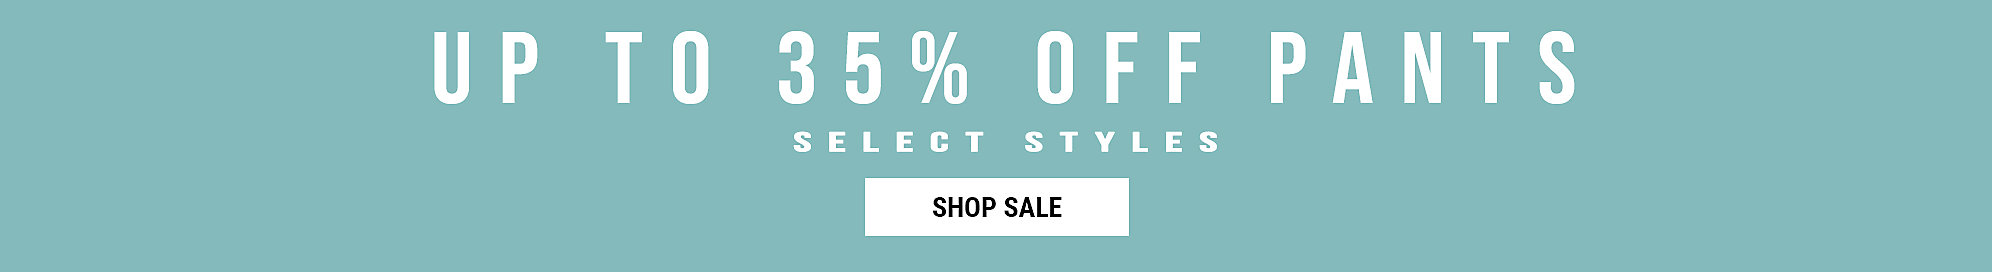 Up To 35% Off Pants* Select Styles